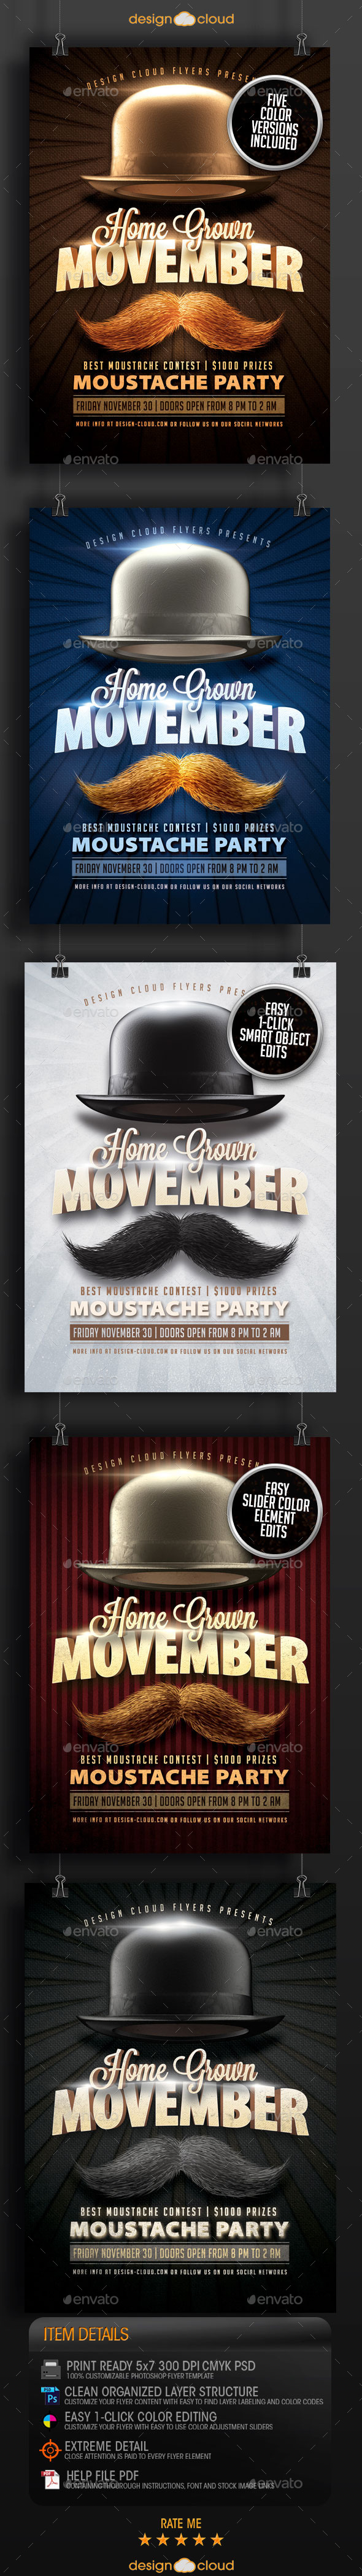 Movember Home Grown Moustache Party Flyer Template